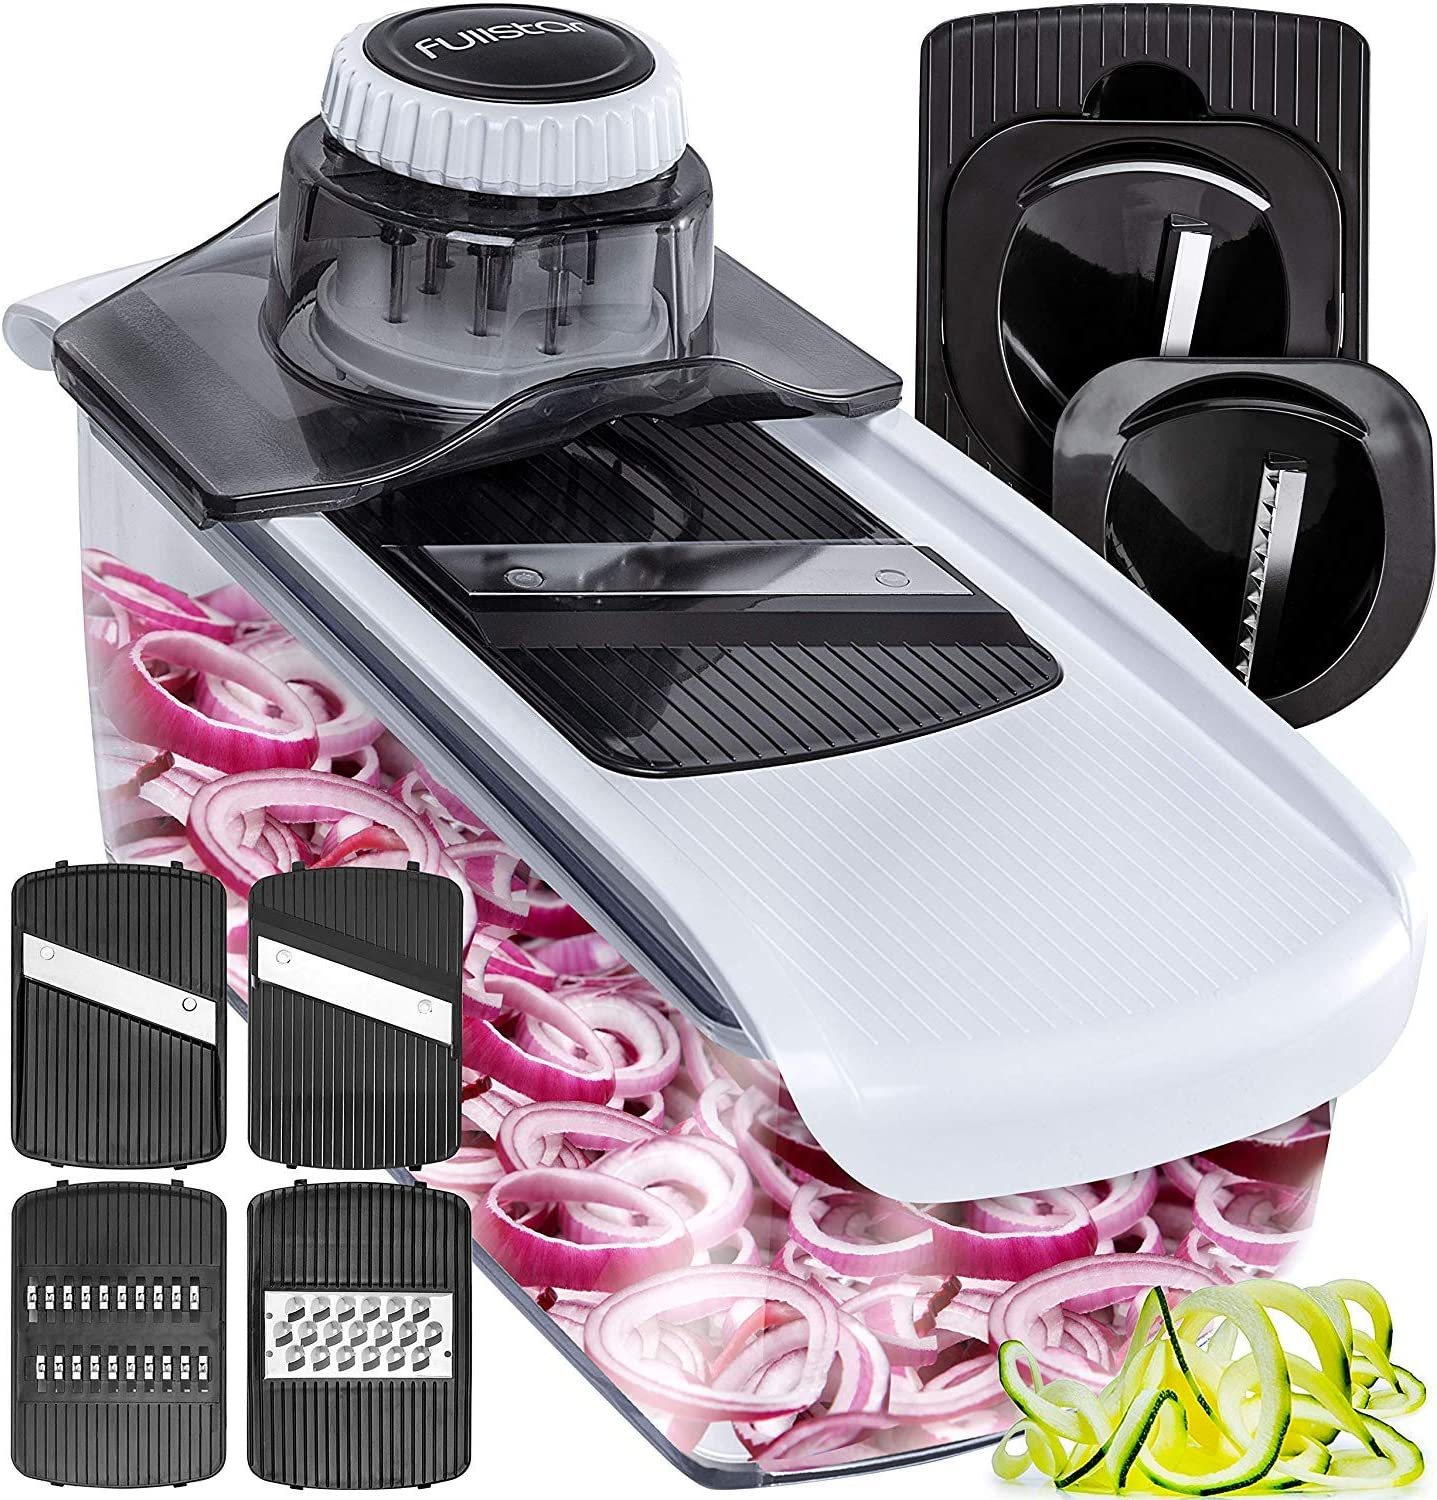 6. Fullstar Mandoline Spiralizer Vegetable Slicer